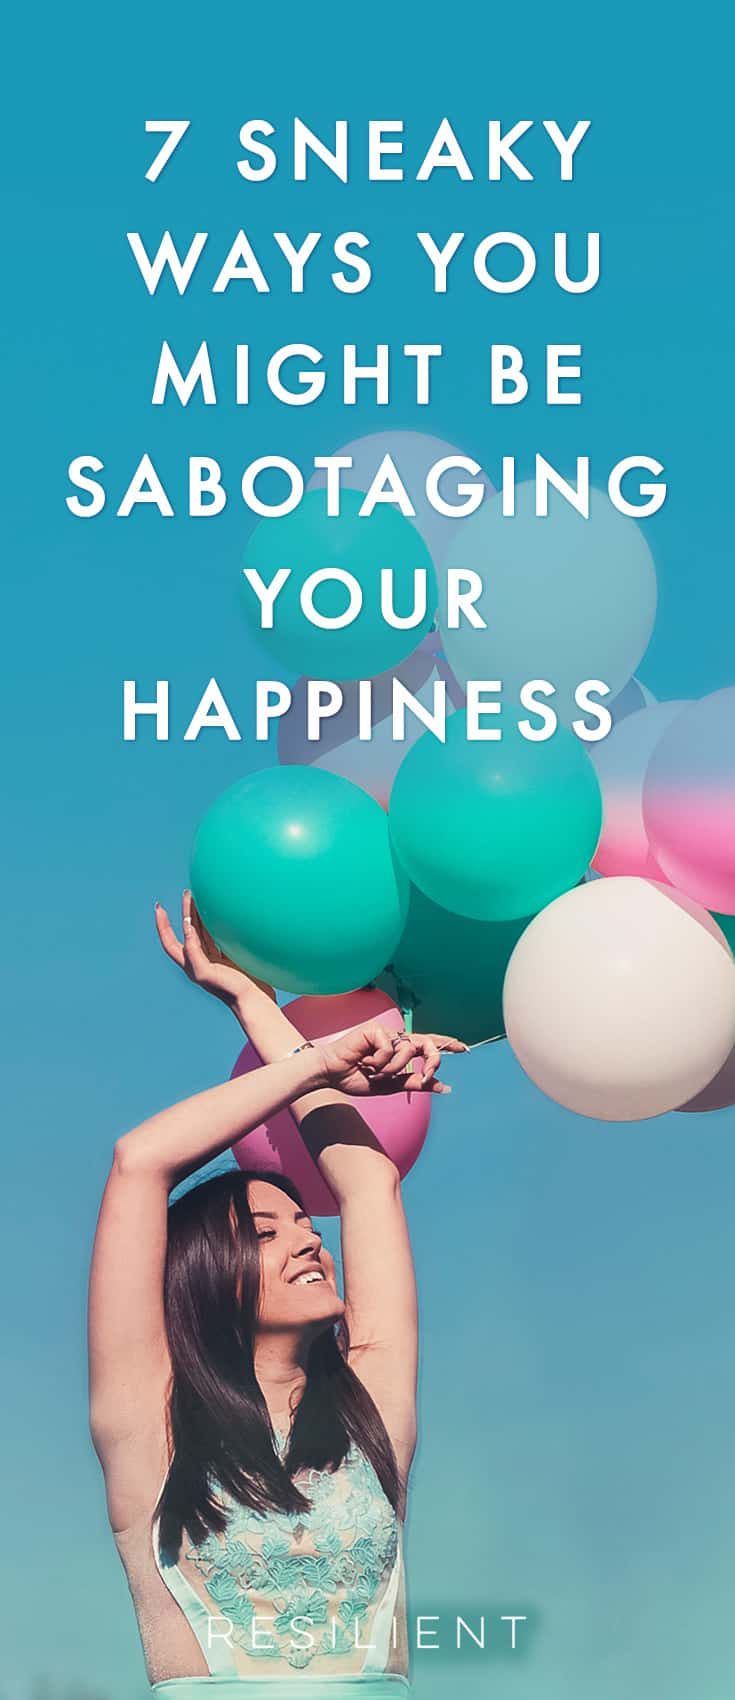 Could you be unknowingly sabotaging your happiness? Maybe you feel like, for every step forward you take, it's three steps back. And you're just never getting ahead. Just as important as making progress toward a happier and better life is making sure you don't backslide into old or destructive habits. Here are 7 sneaky ways you might be sabotaging your happiness.